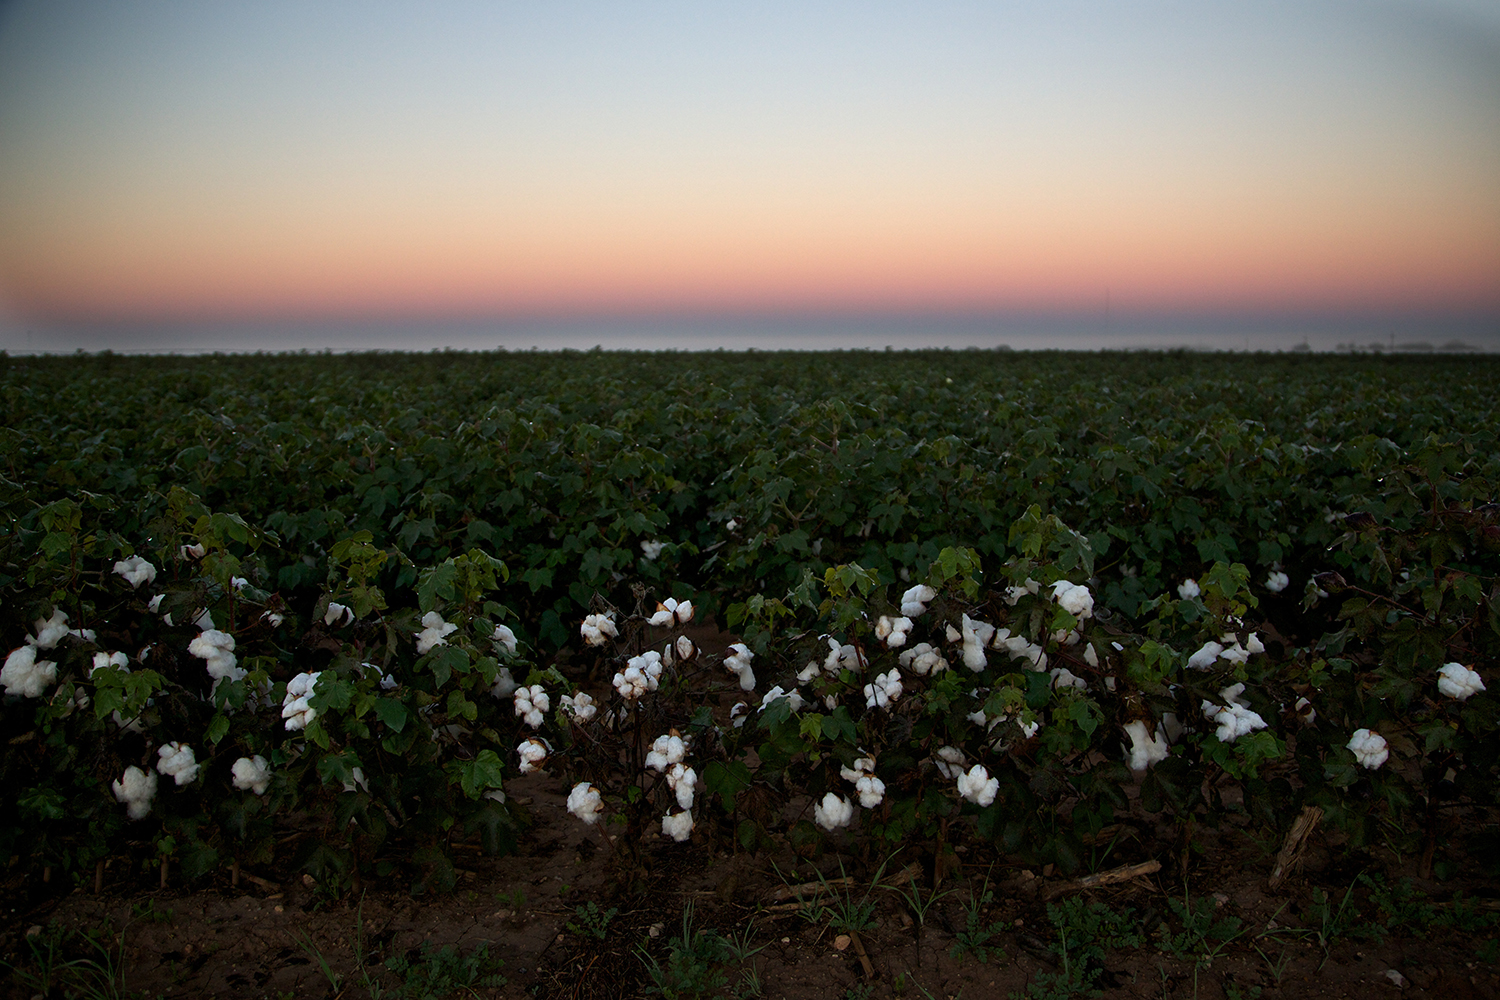 Cotton_USA_012.jpg